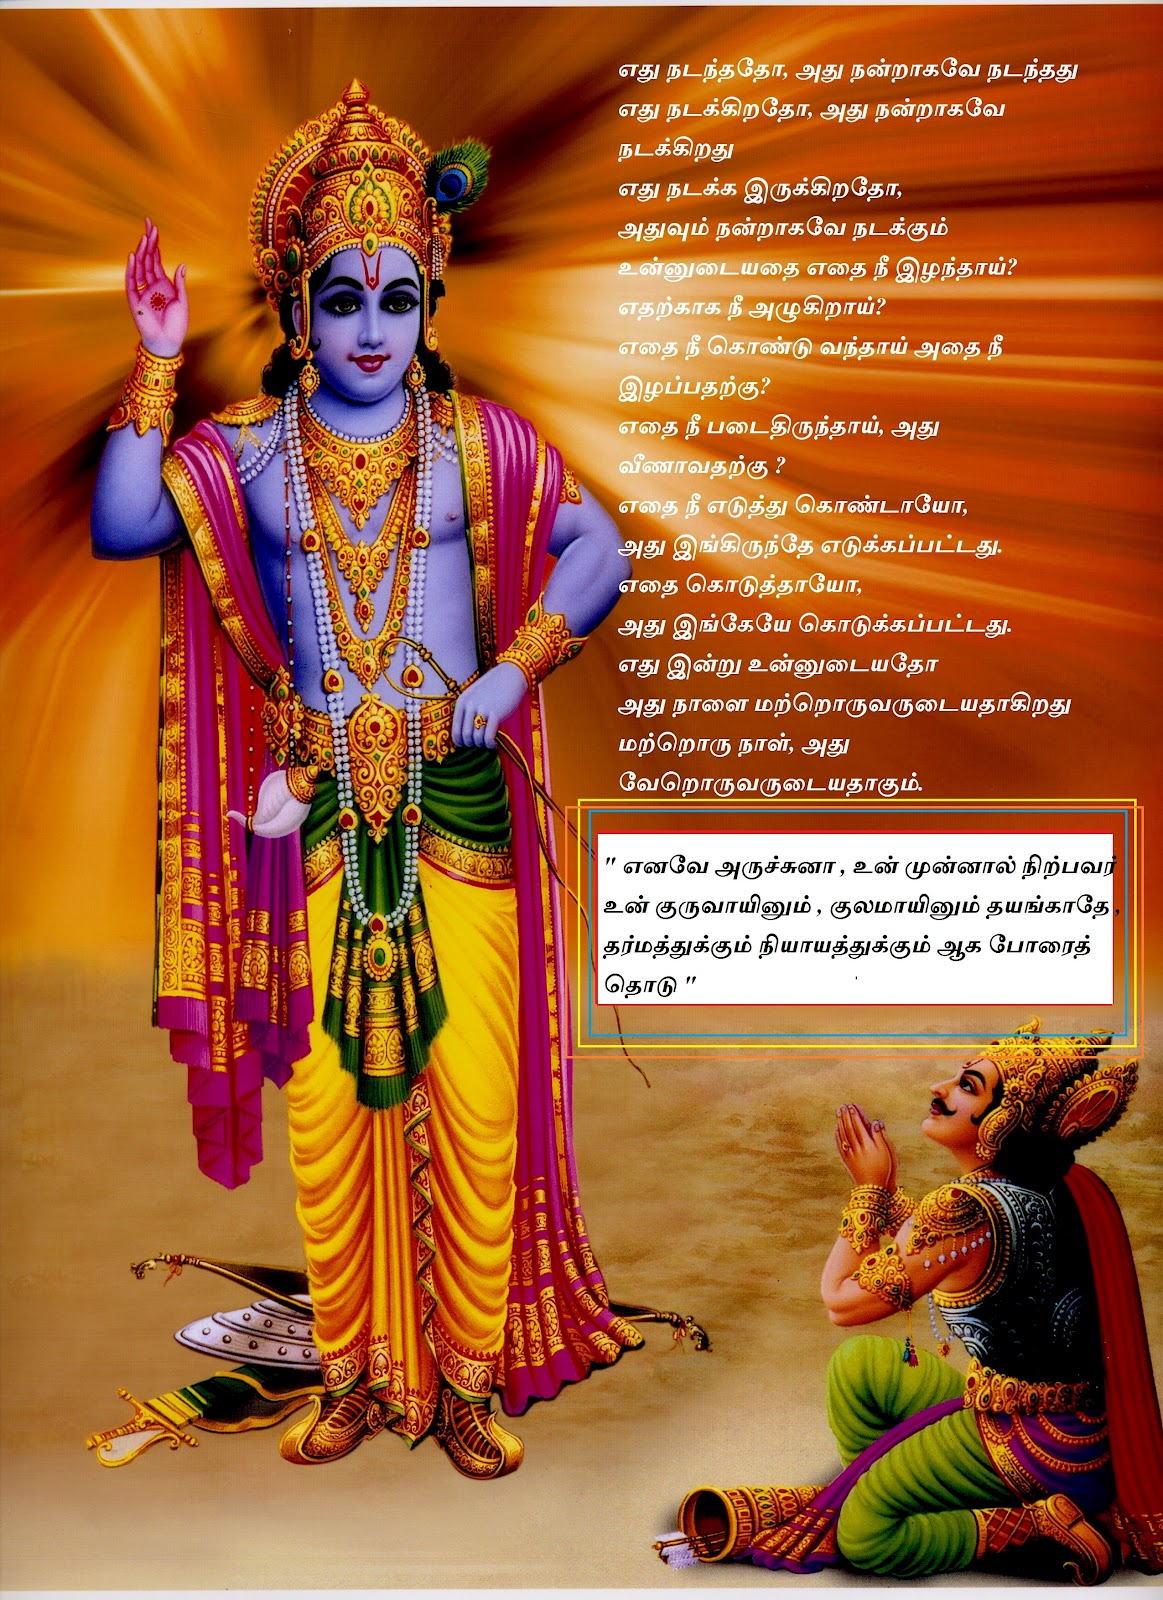 bhagavath geetha wallpapers - photo #11